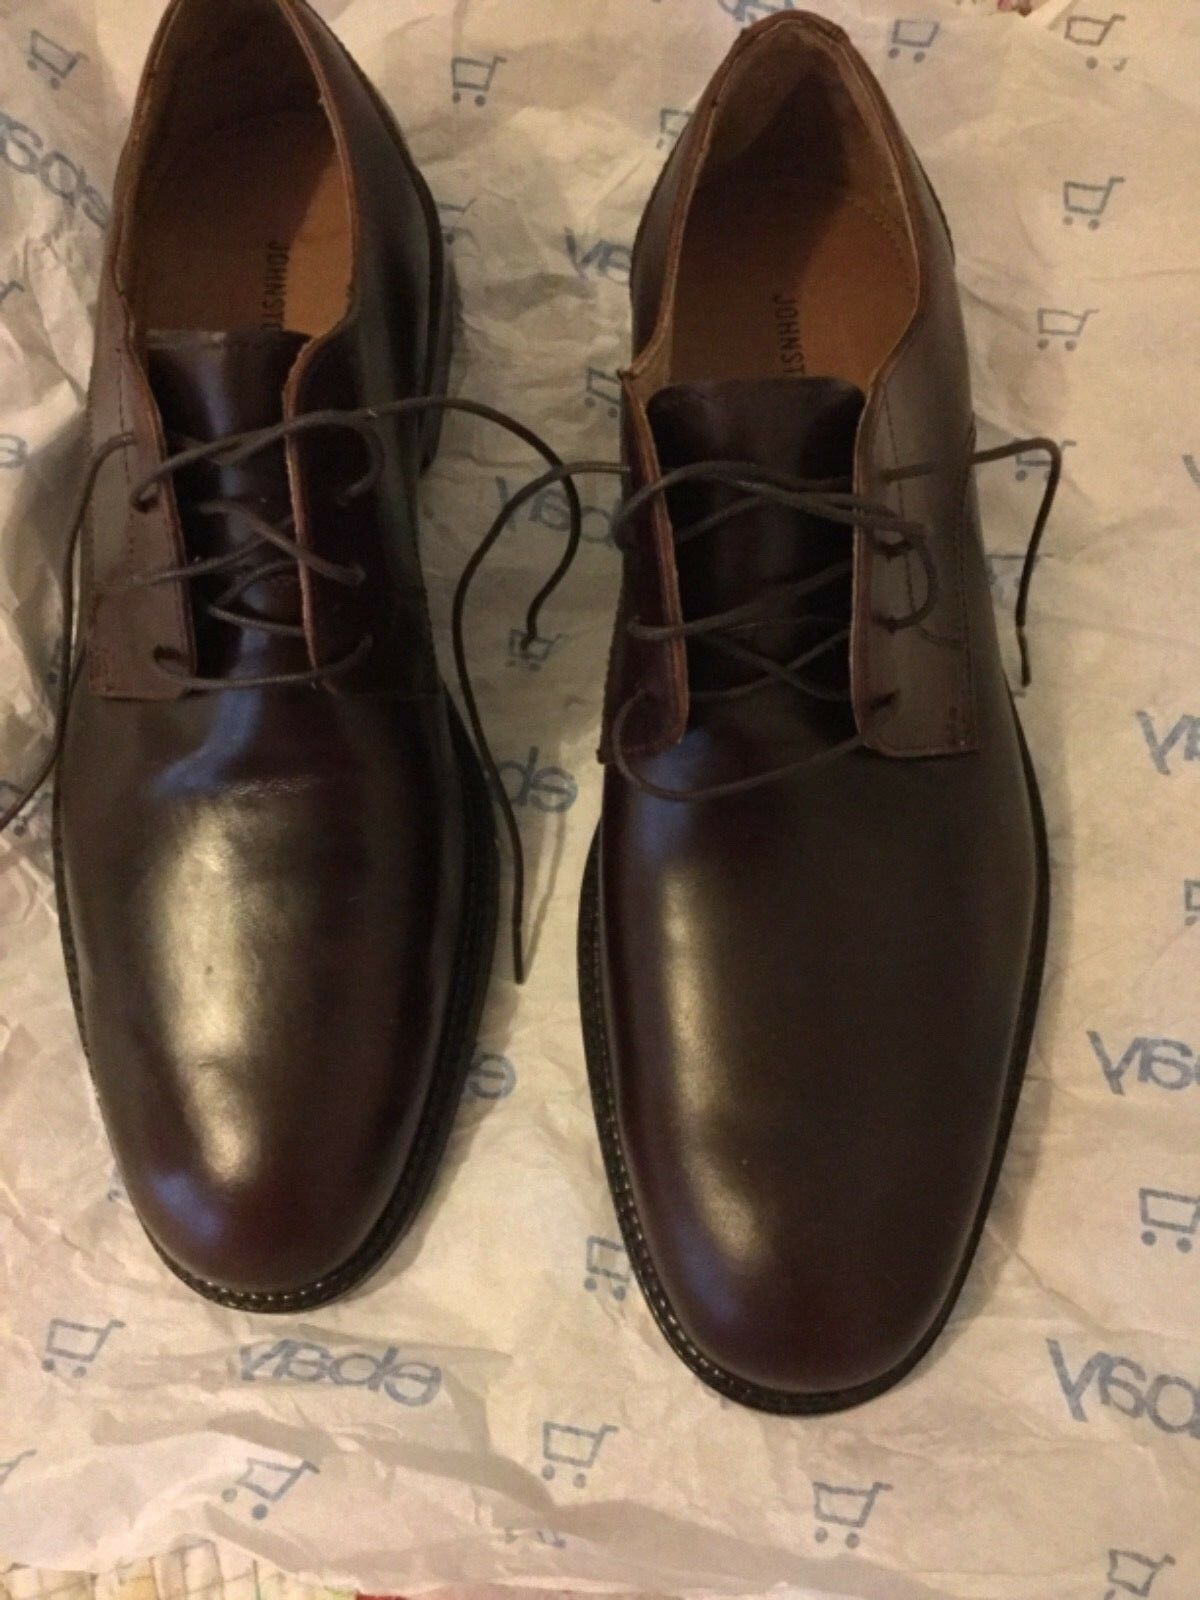 Nouveau Johnston & Murphy Homme Marron Laceup Derbies - 10.5